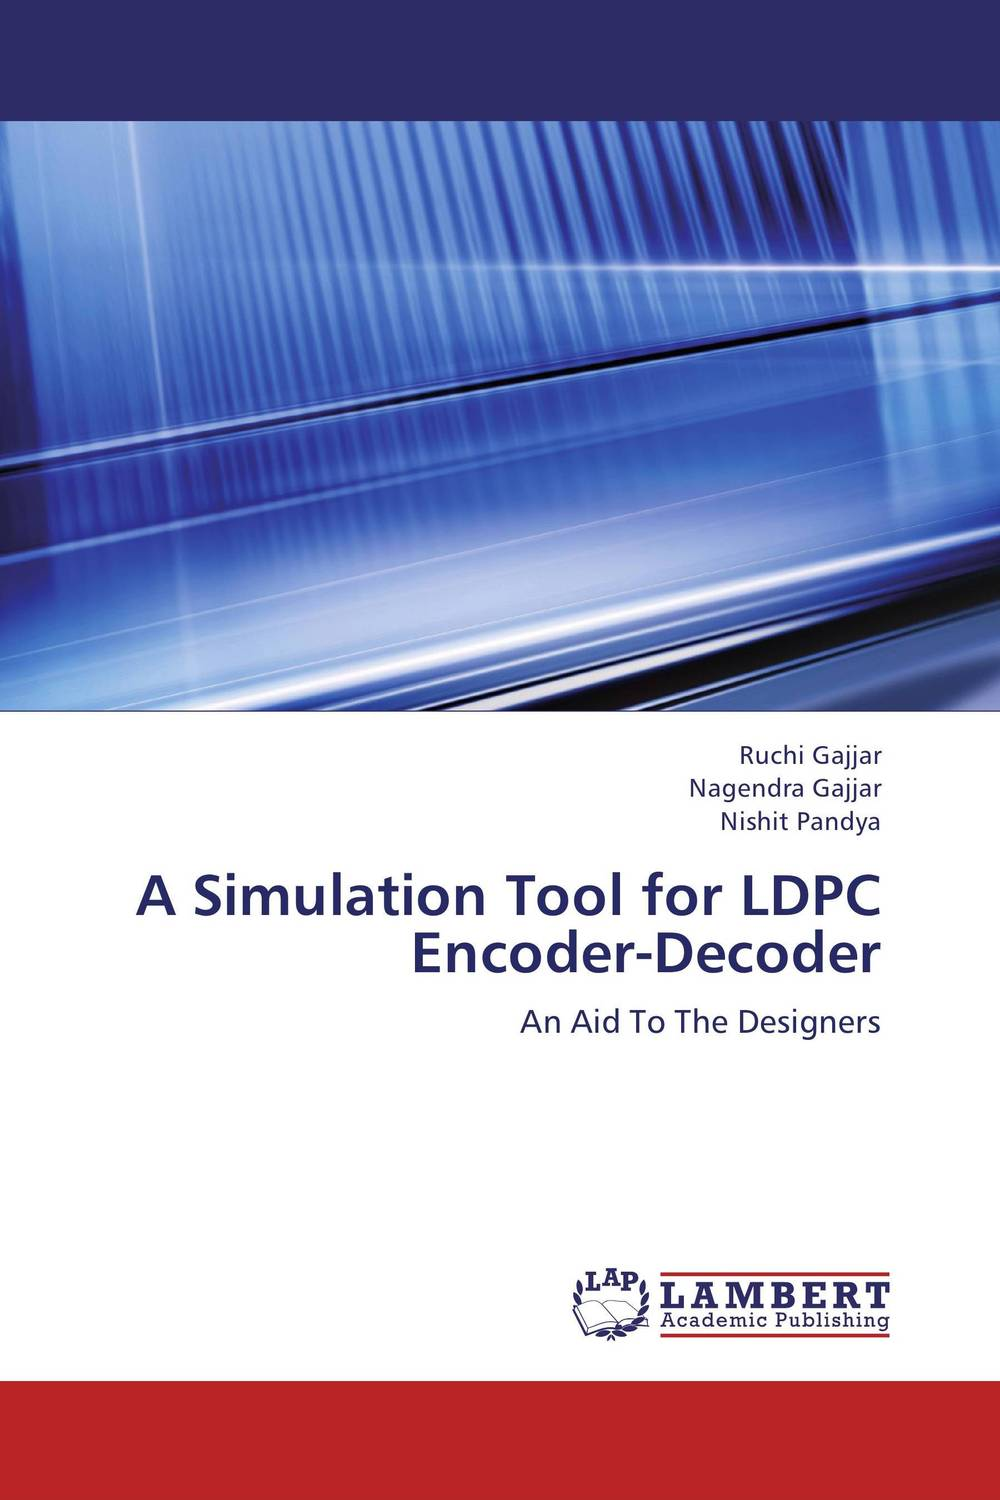 A Simulation Tool for LDPC Encoder-Decoder performance evaluation of turbo codes